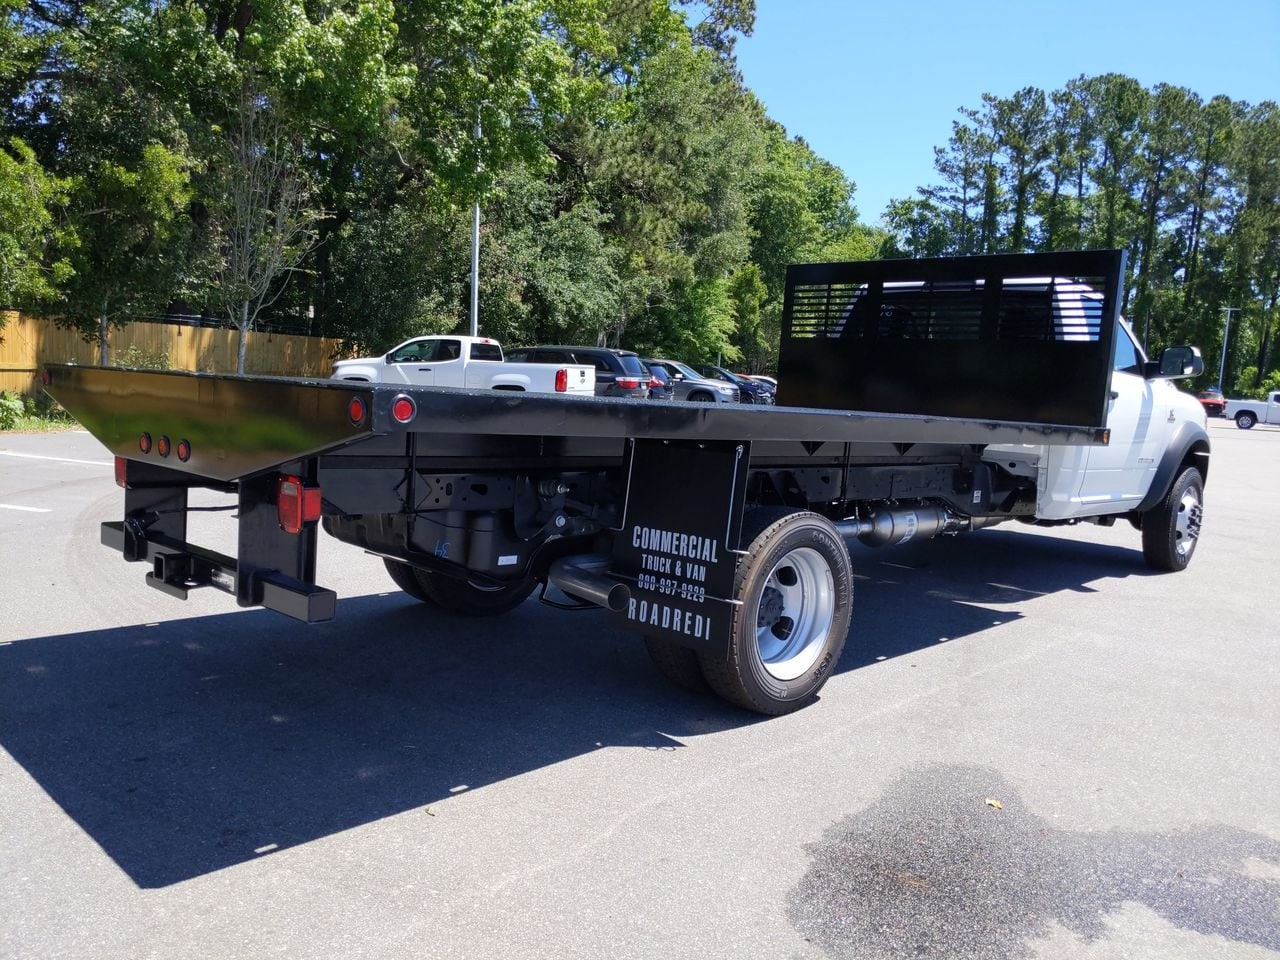 2019 Ram 5500 Regular Cab DRW 4x2, Commercial Truck & Van Equipment Platform Body #M190599 - photo 1